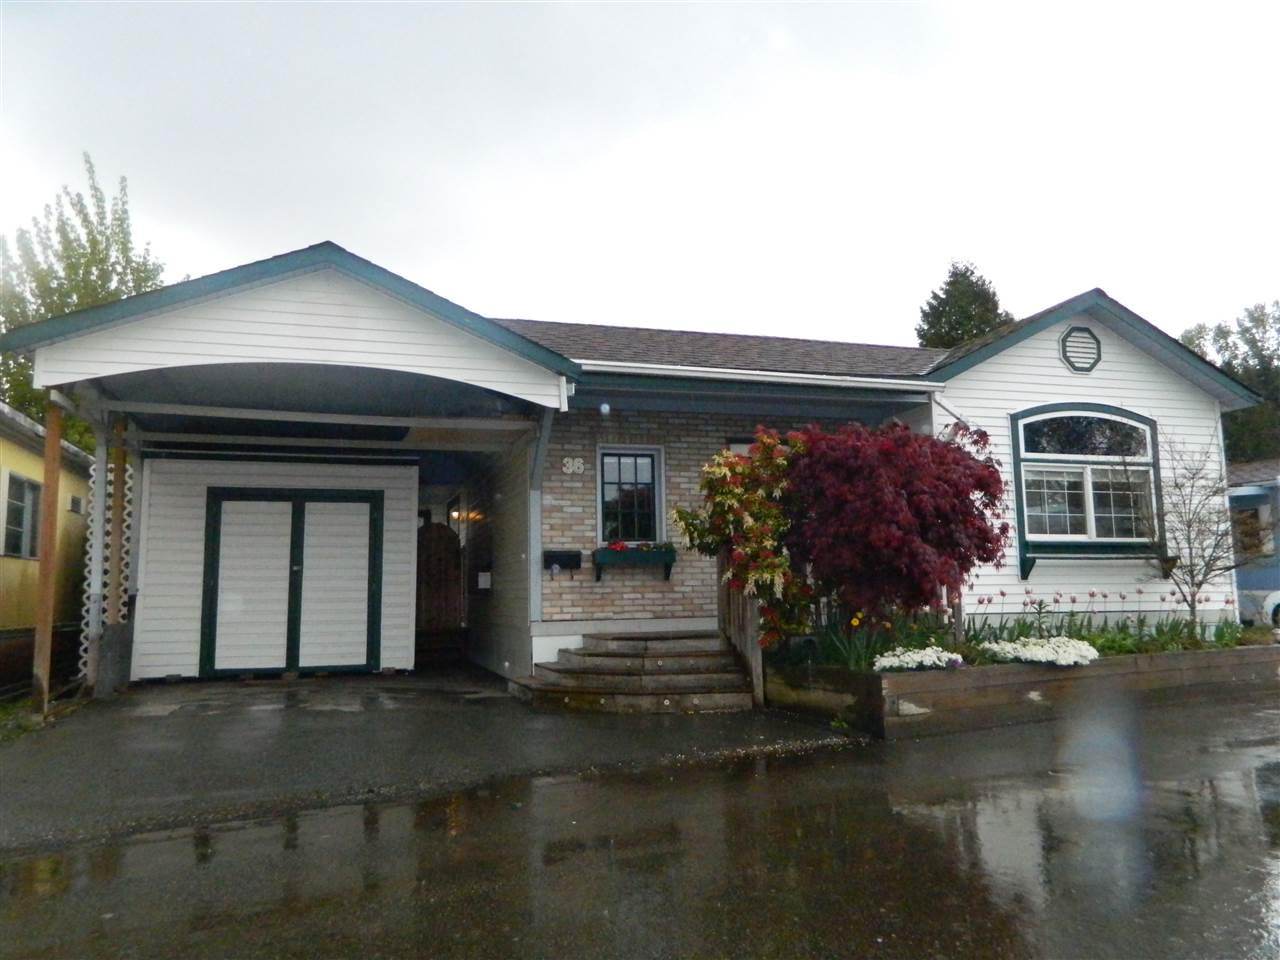 Main Photo: 36 201 CAYER Street in Coquitlam: Maillardville Manufactured Home for sale : MLS(r) # R2162685